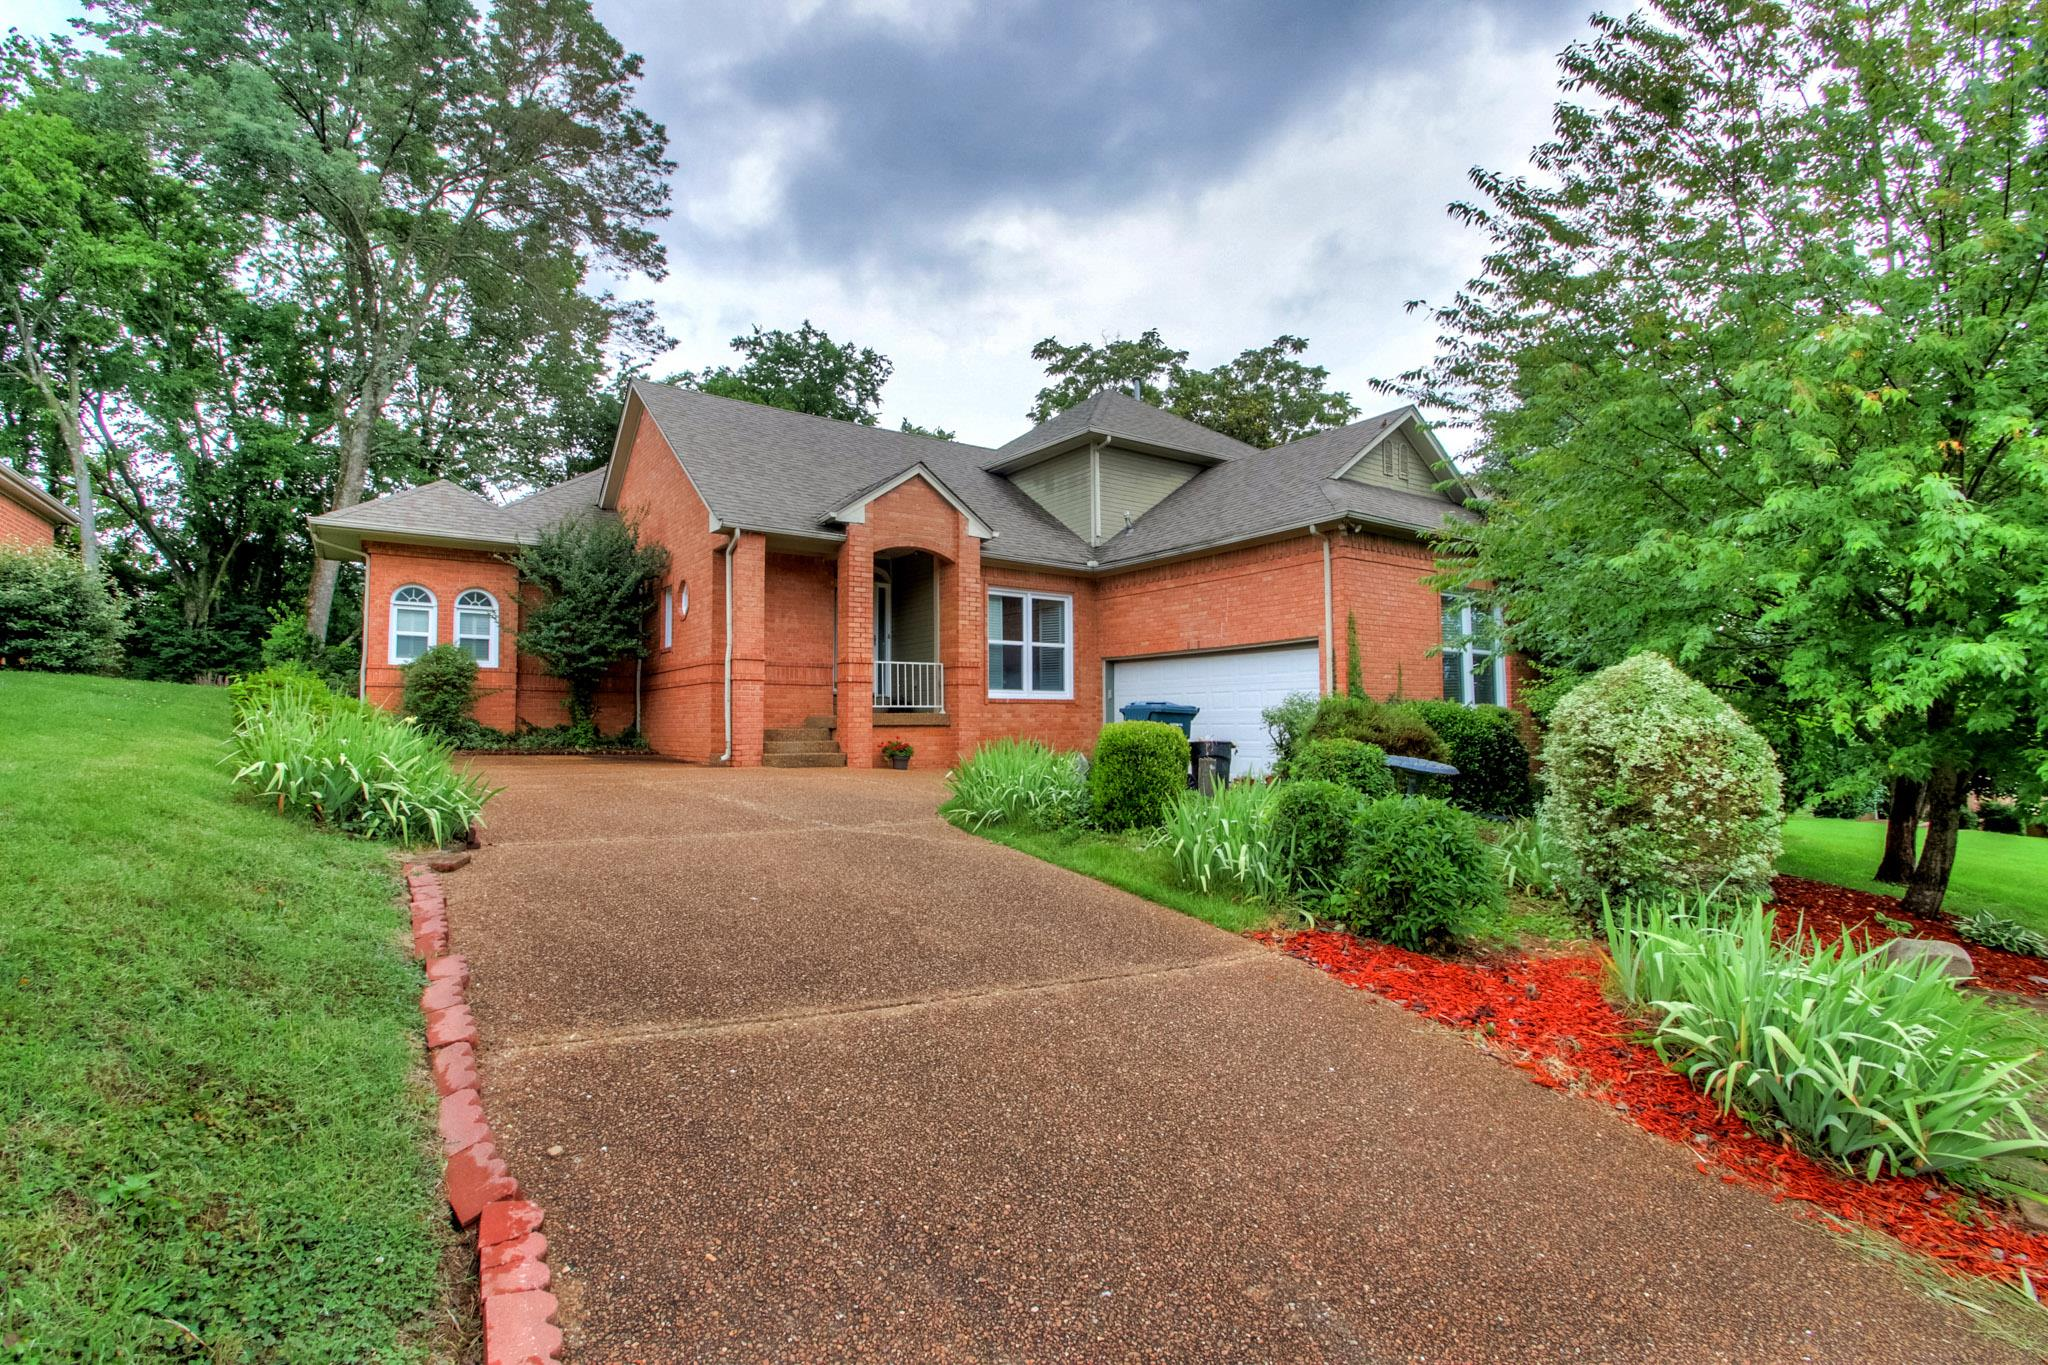 One of Bellevue 3 Bedroom Homes for Sale at 7016 Poplar Creek Trace